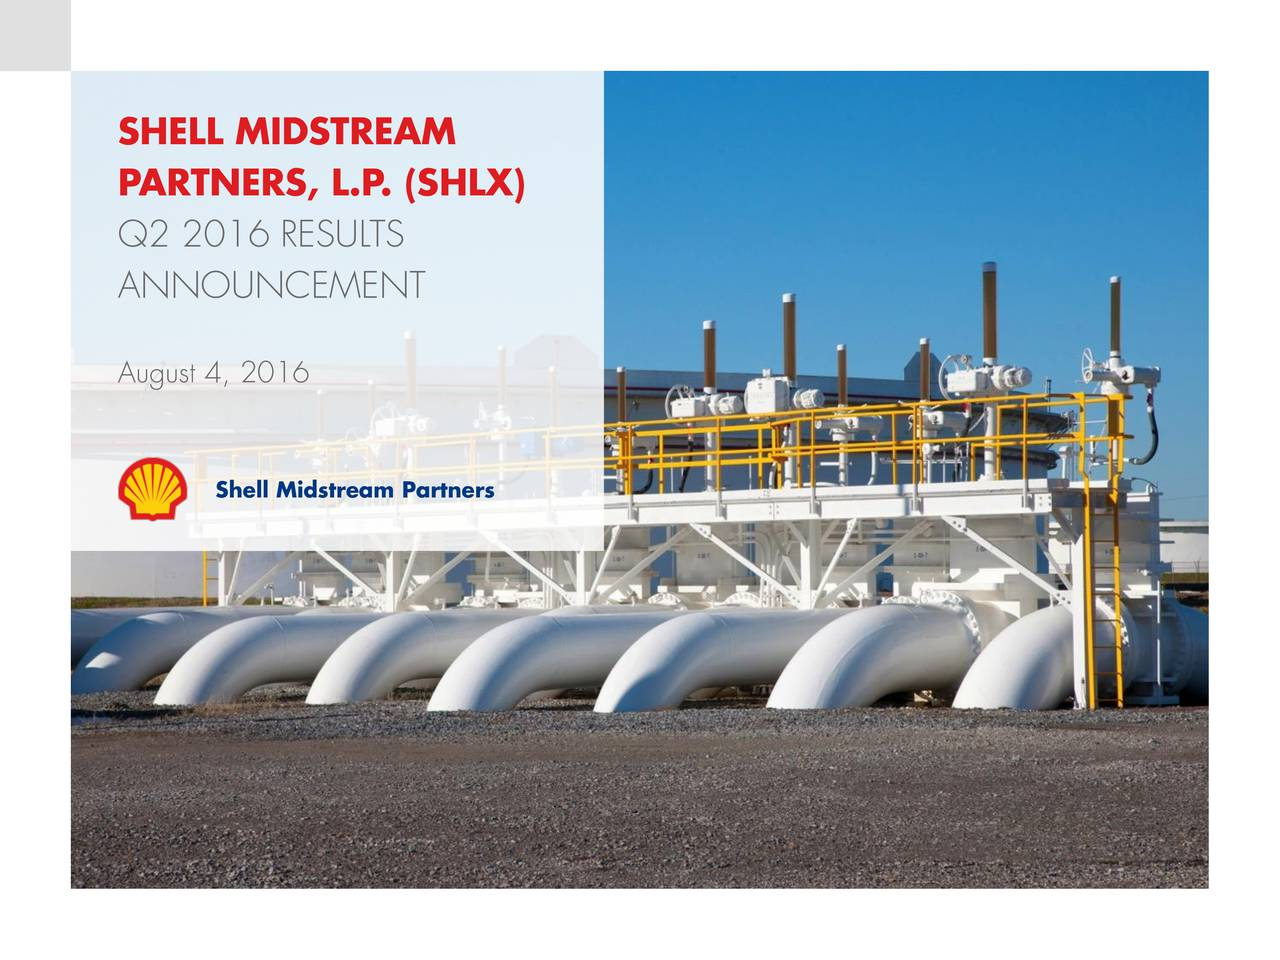 PARTNERS, L.P. (SHLX) Q2 2016 RESULTS ANNOUNCEMENT August 4, 2016 Shell Midstream Partners